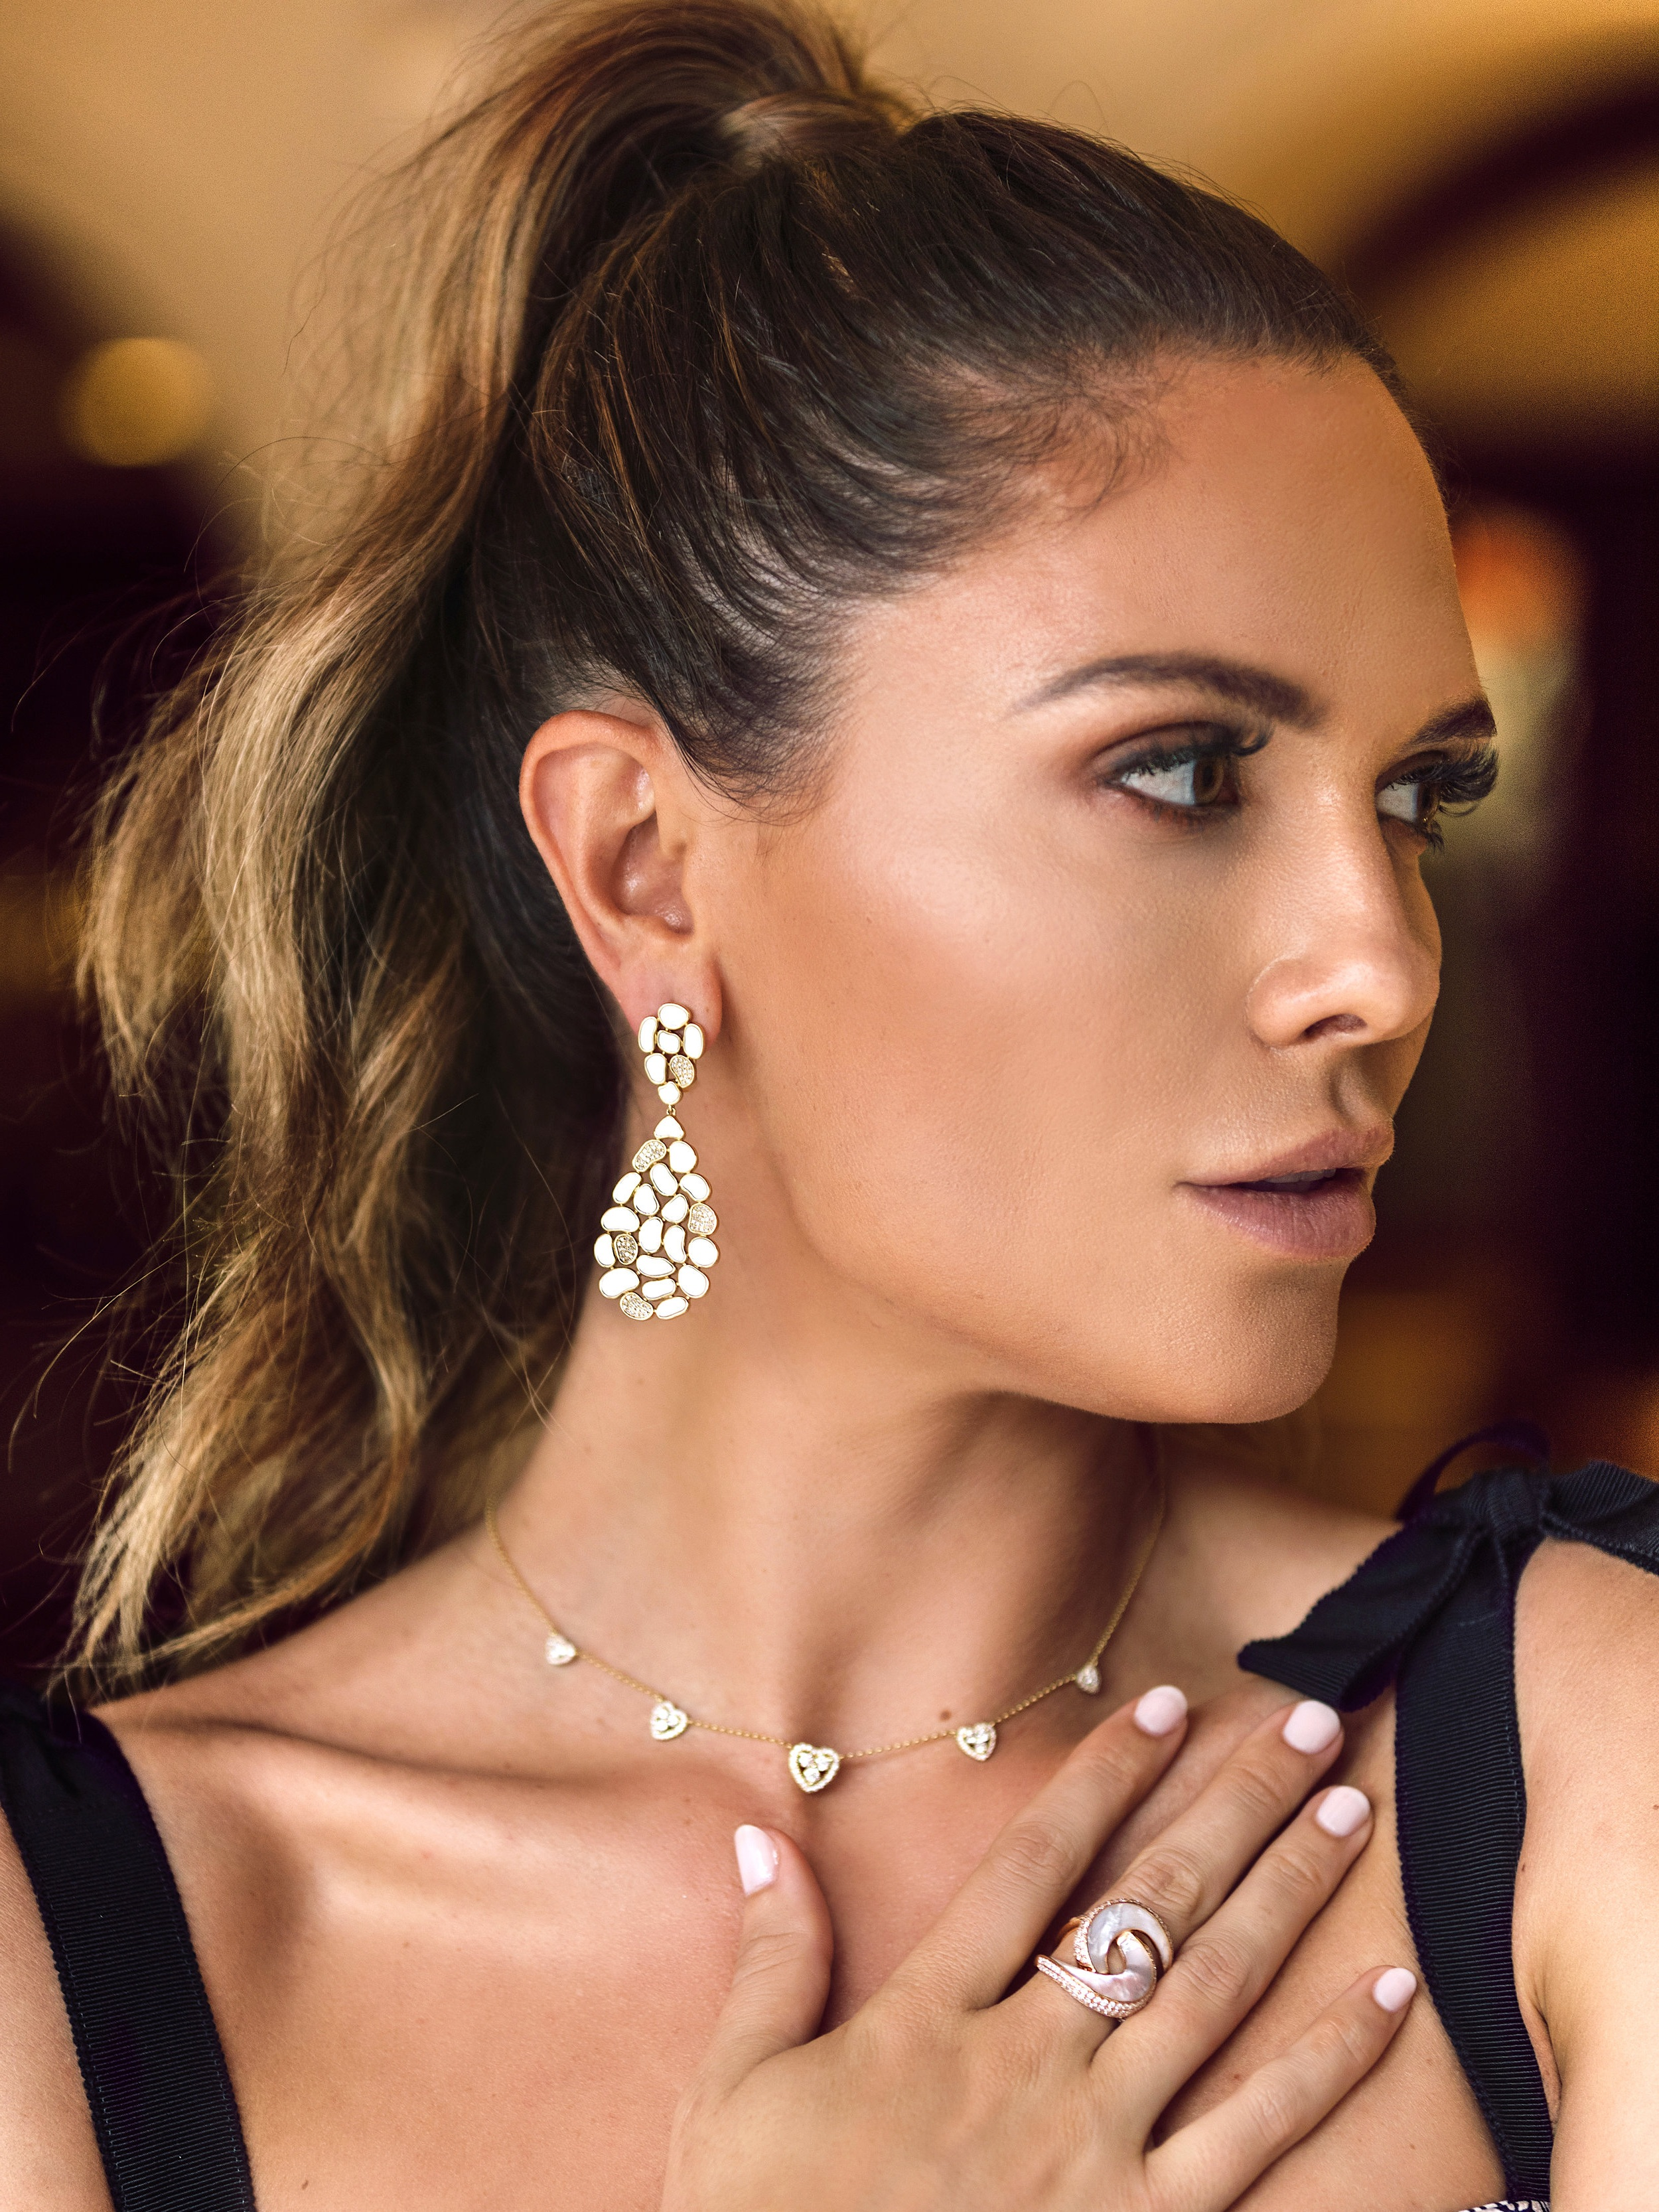 Luna Nueva Drop Earrings - The newest version our Mia Luna drops embraces Patricia's signature use of pave diamonds and mother-of-pearl. Instead of the classic flat facade, the Luna Nueva earrings offers a cluster of diamonds and mother-of-pearl adding richness and wearability.